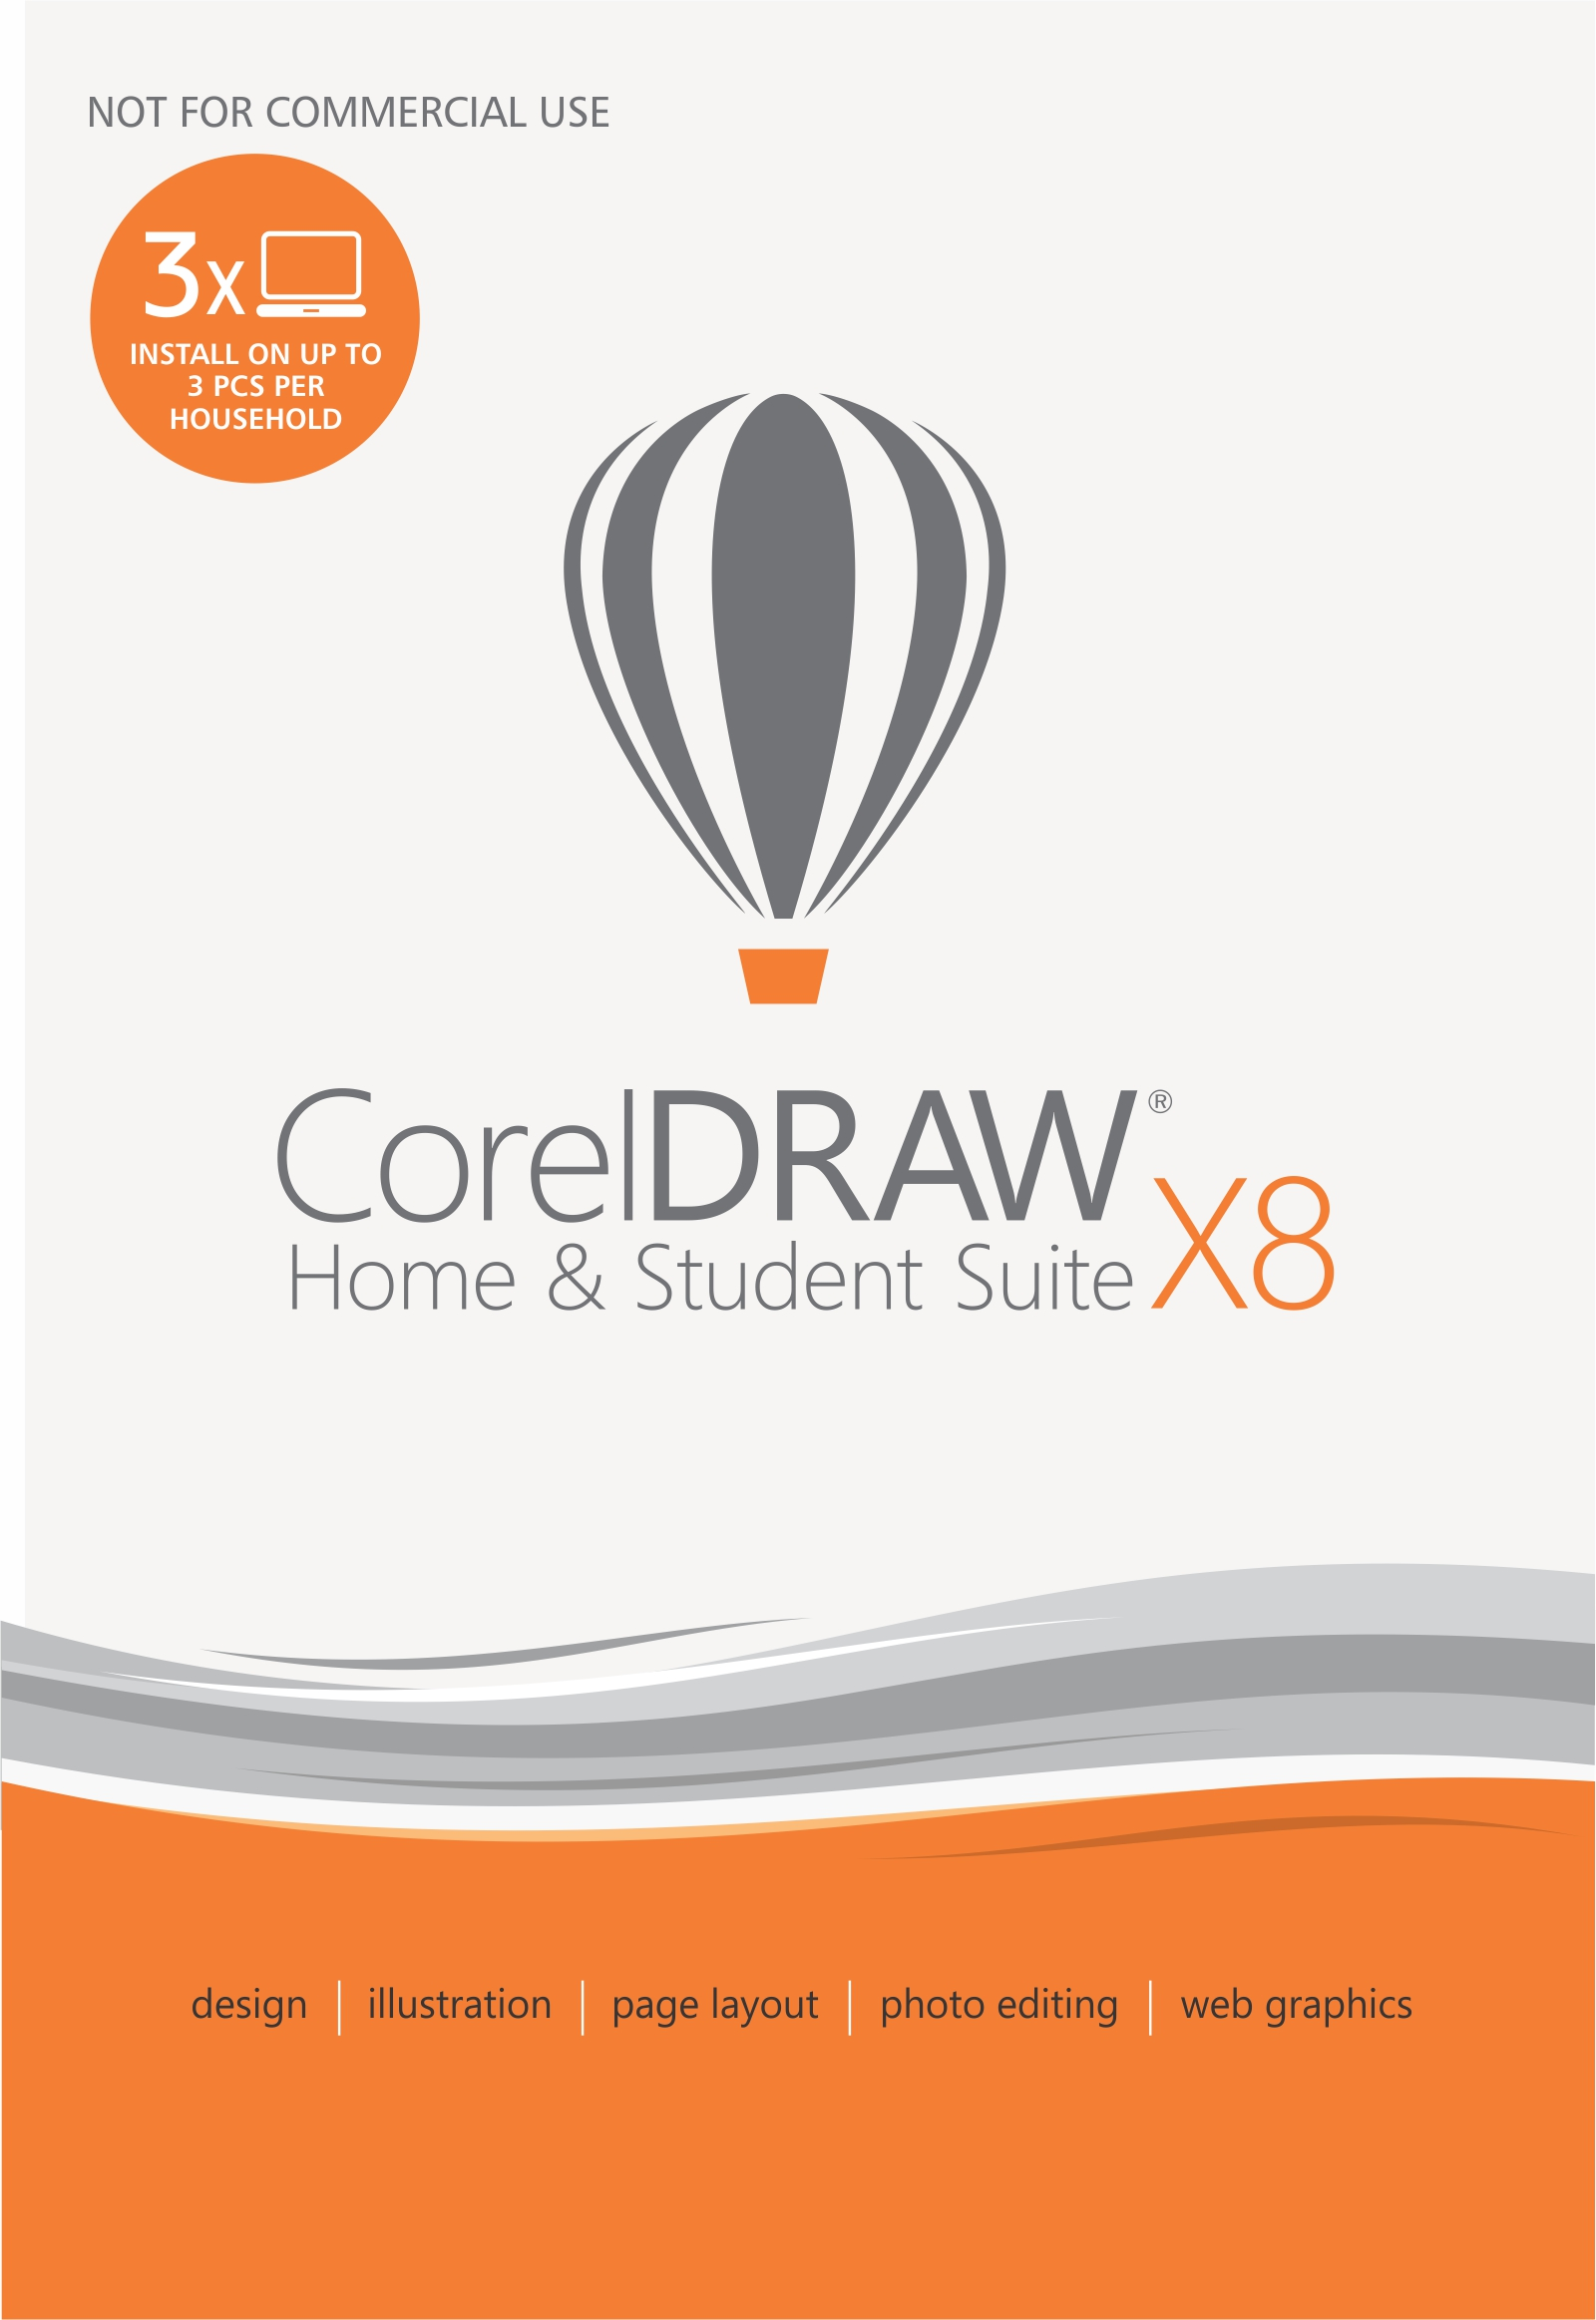 CorelDRAW Home & Student Suite X8 [Download] by Corel